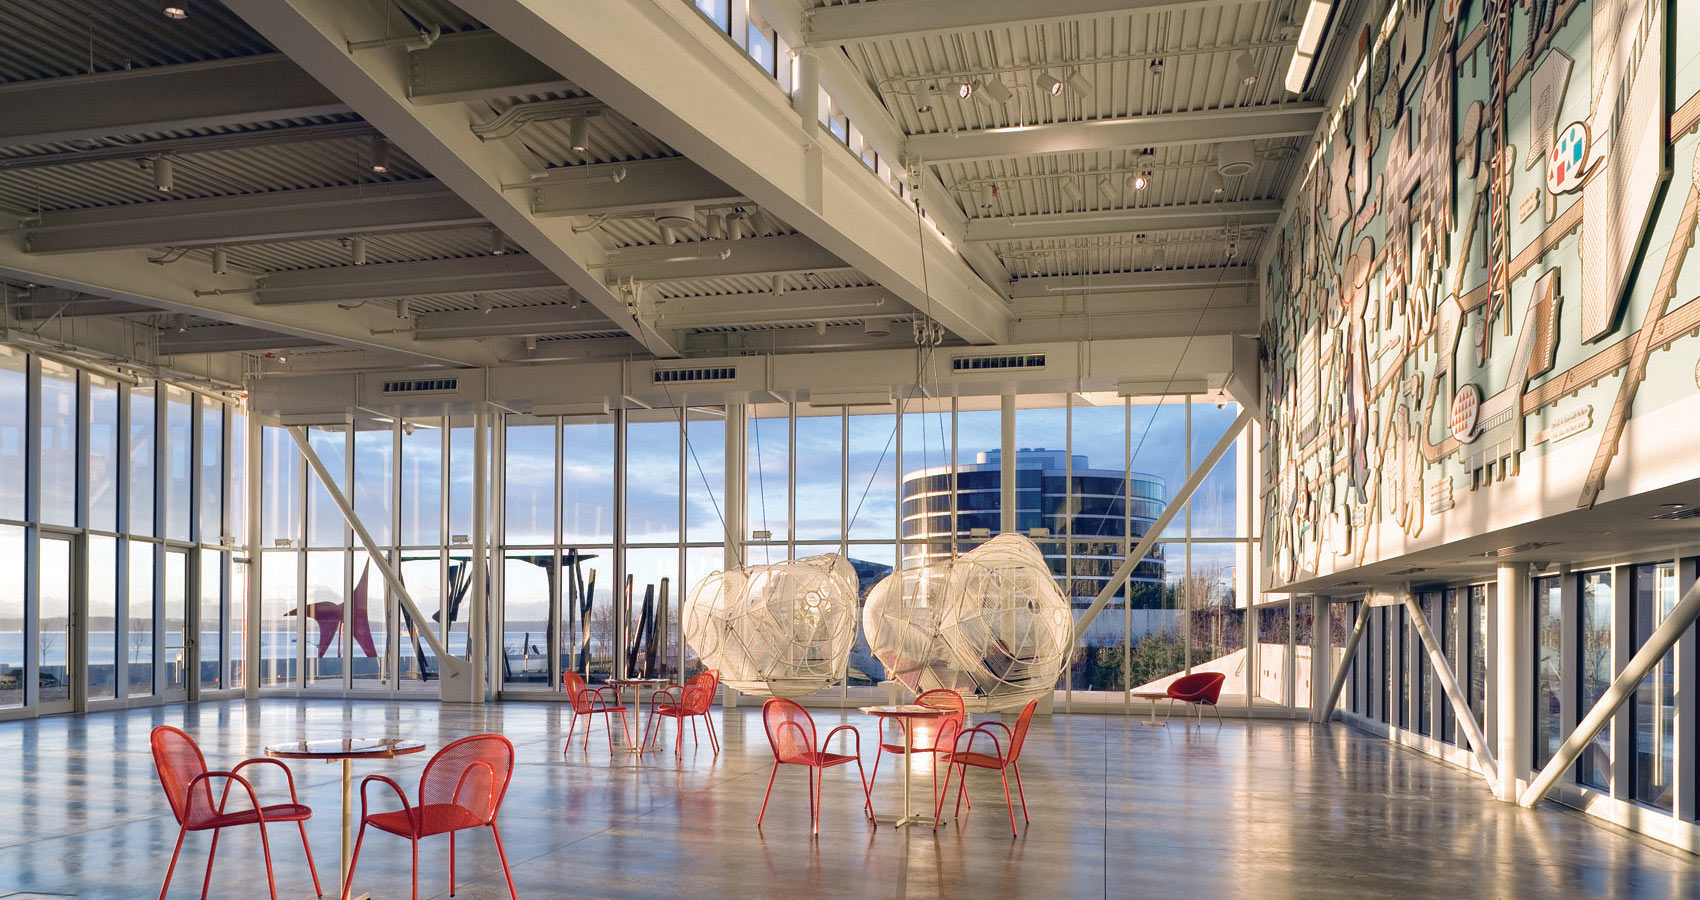 Inside the Peccar Pavilion (image from Weiss/Manfredi Architectural Firm)